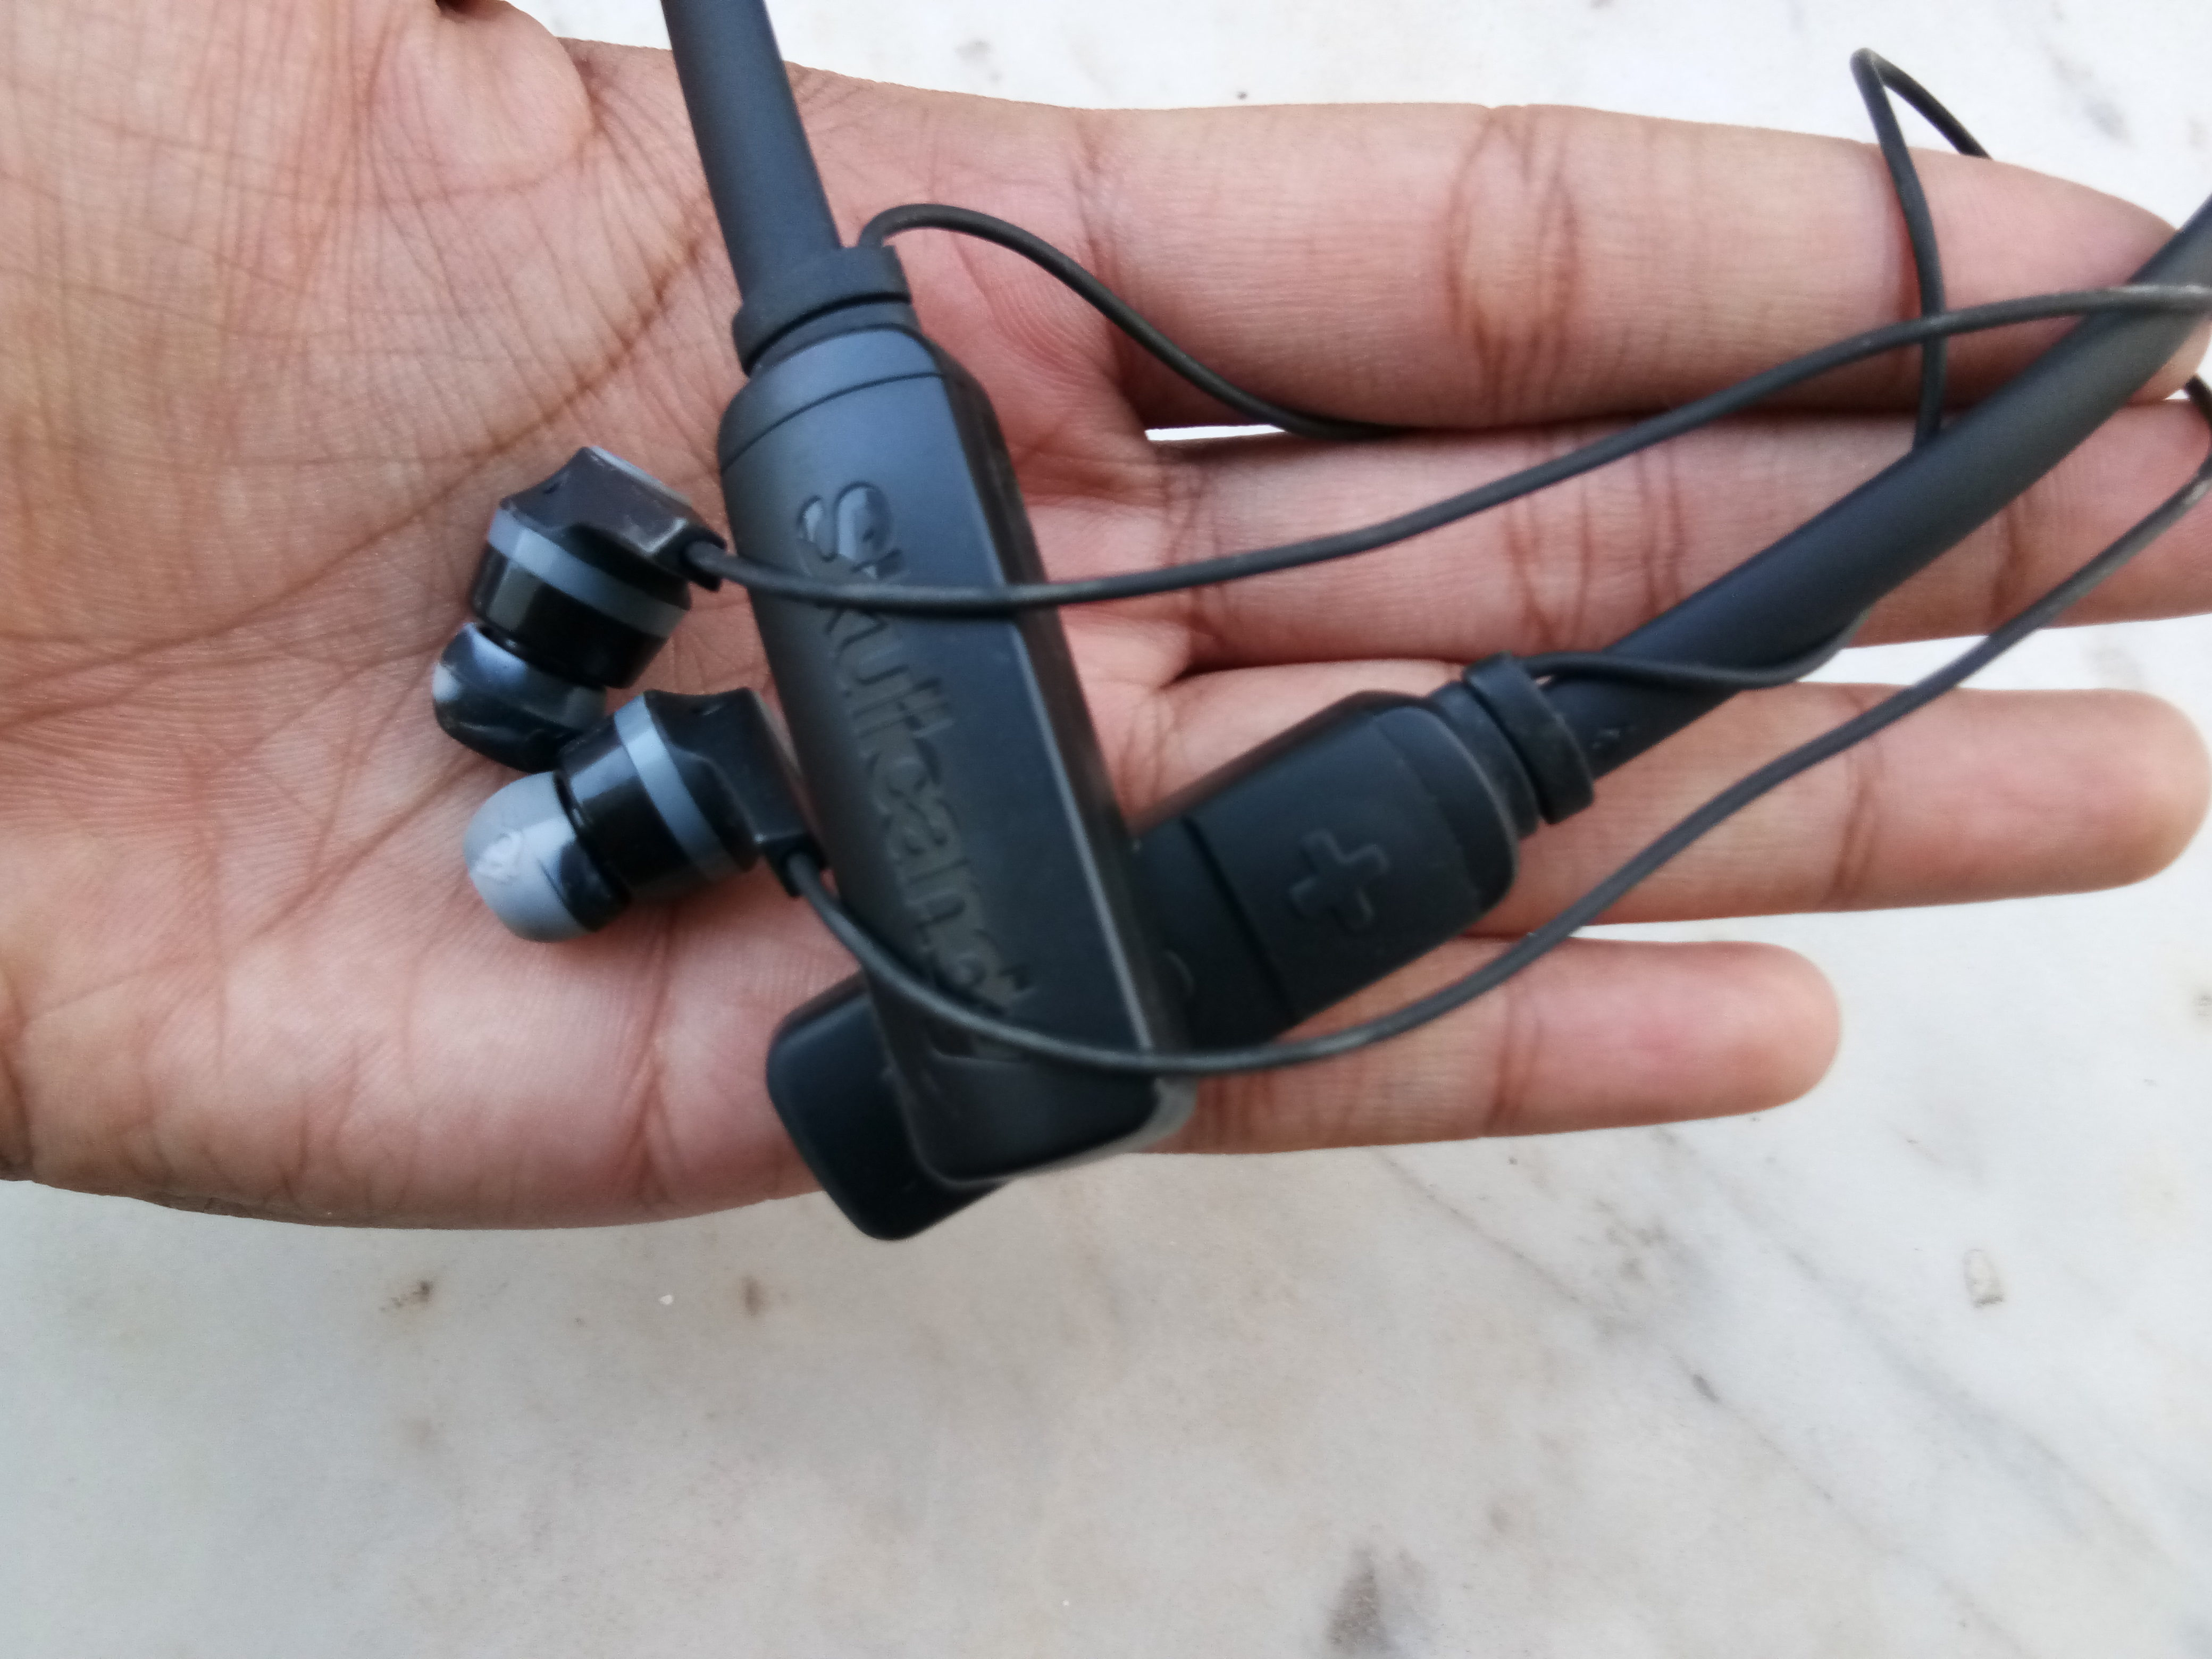 how to tell skullcandy inkd battrry life